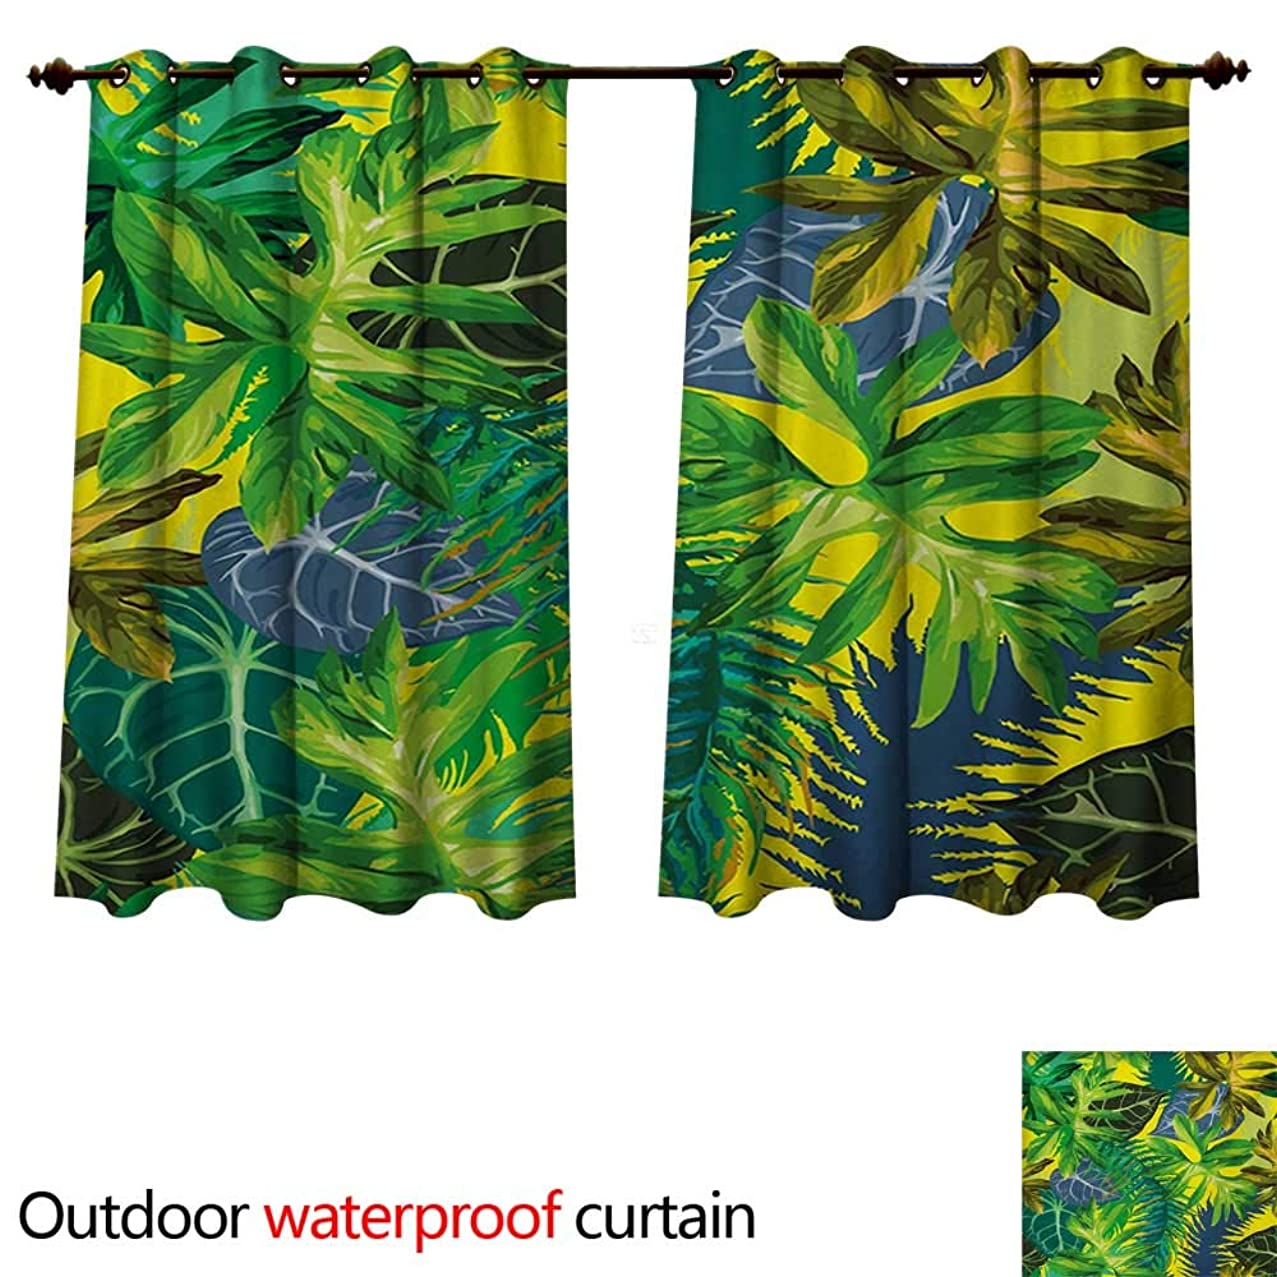 WilliamsDecor Plant Outdoor Balcony Privacy Curtain Botany Themed Drawing Depicting Exotic Leaves in Tropical Environment Hawaiian Vibes W96 x L72(245cm x 183cm)